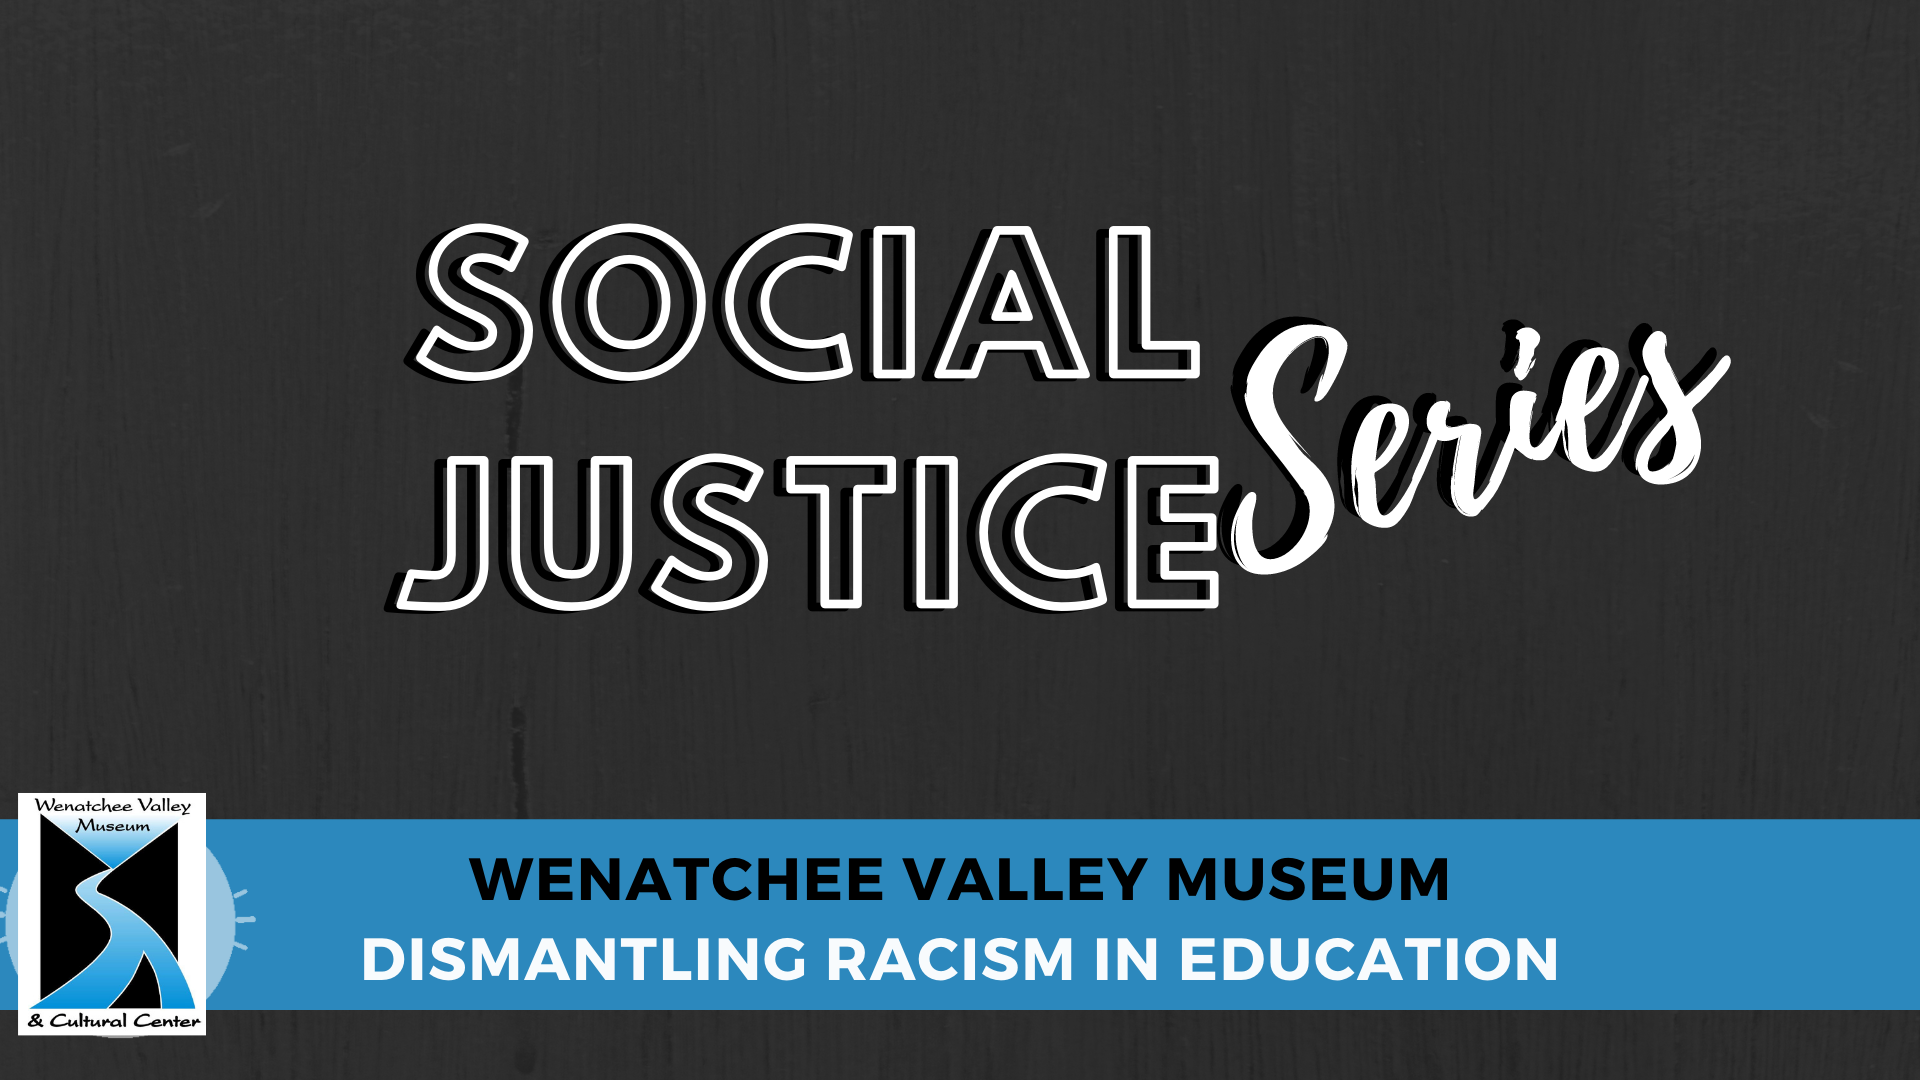 Dismantling Racism in Education